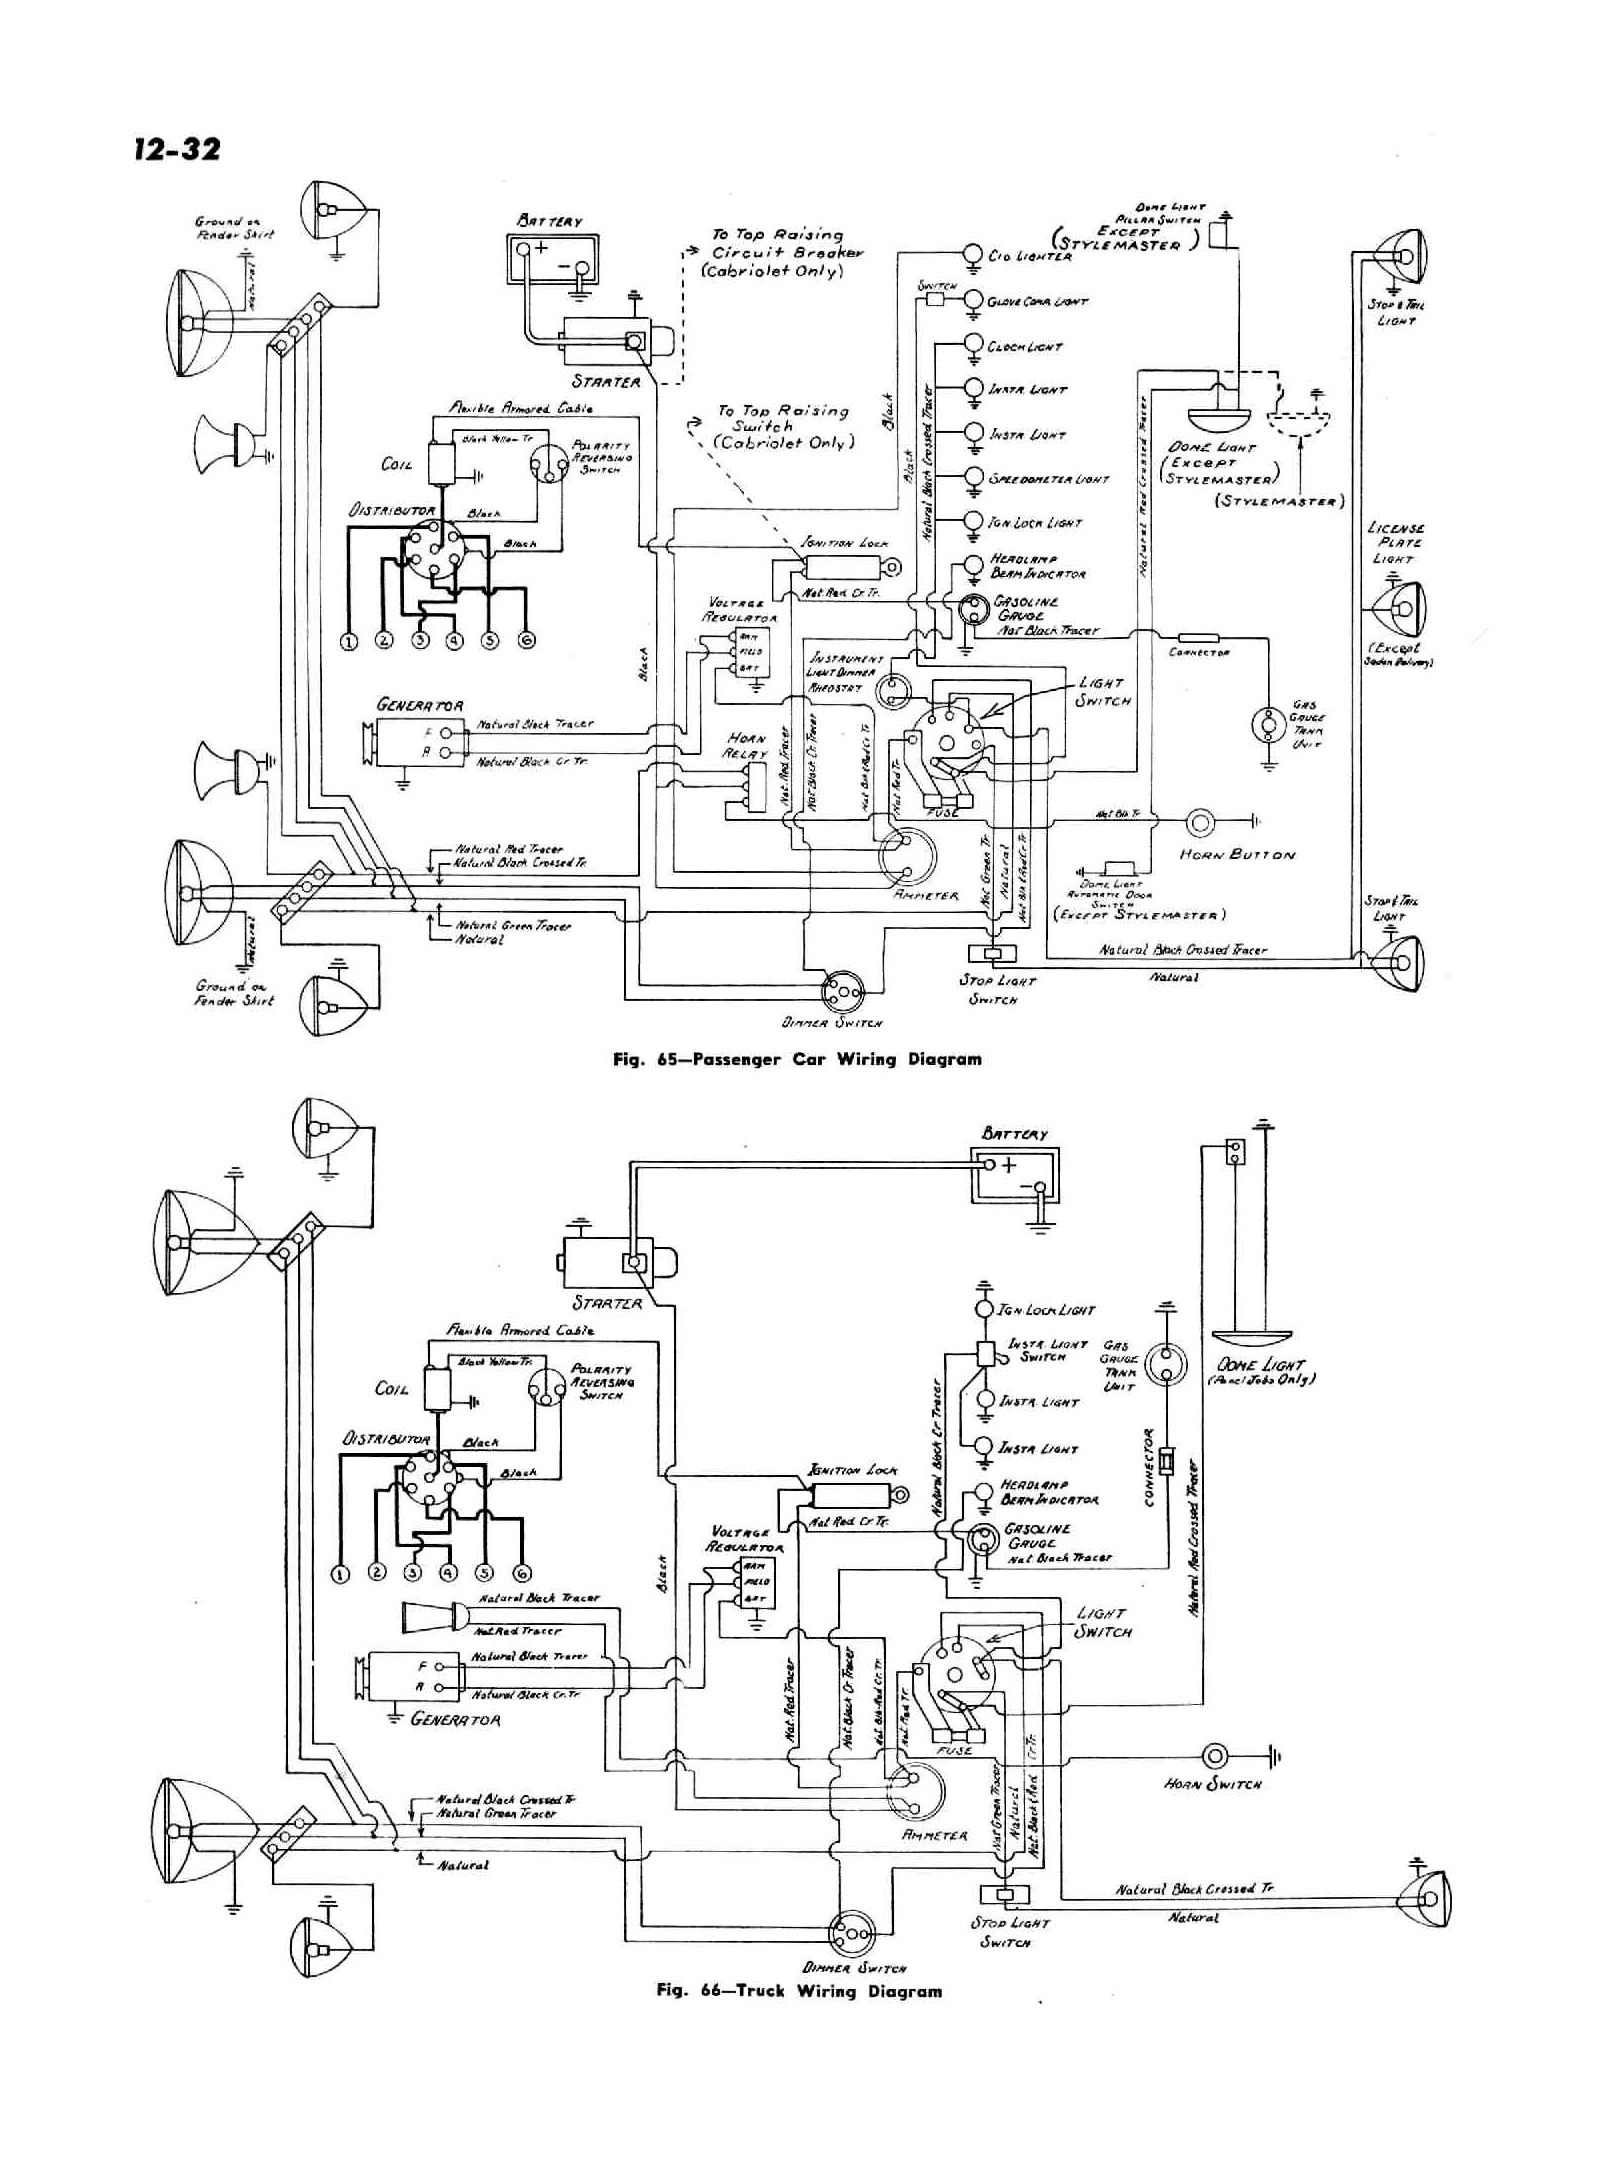 656 light wiring diagram 2004 pontiac grand prix fuse box